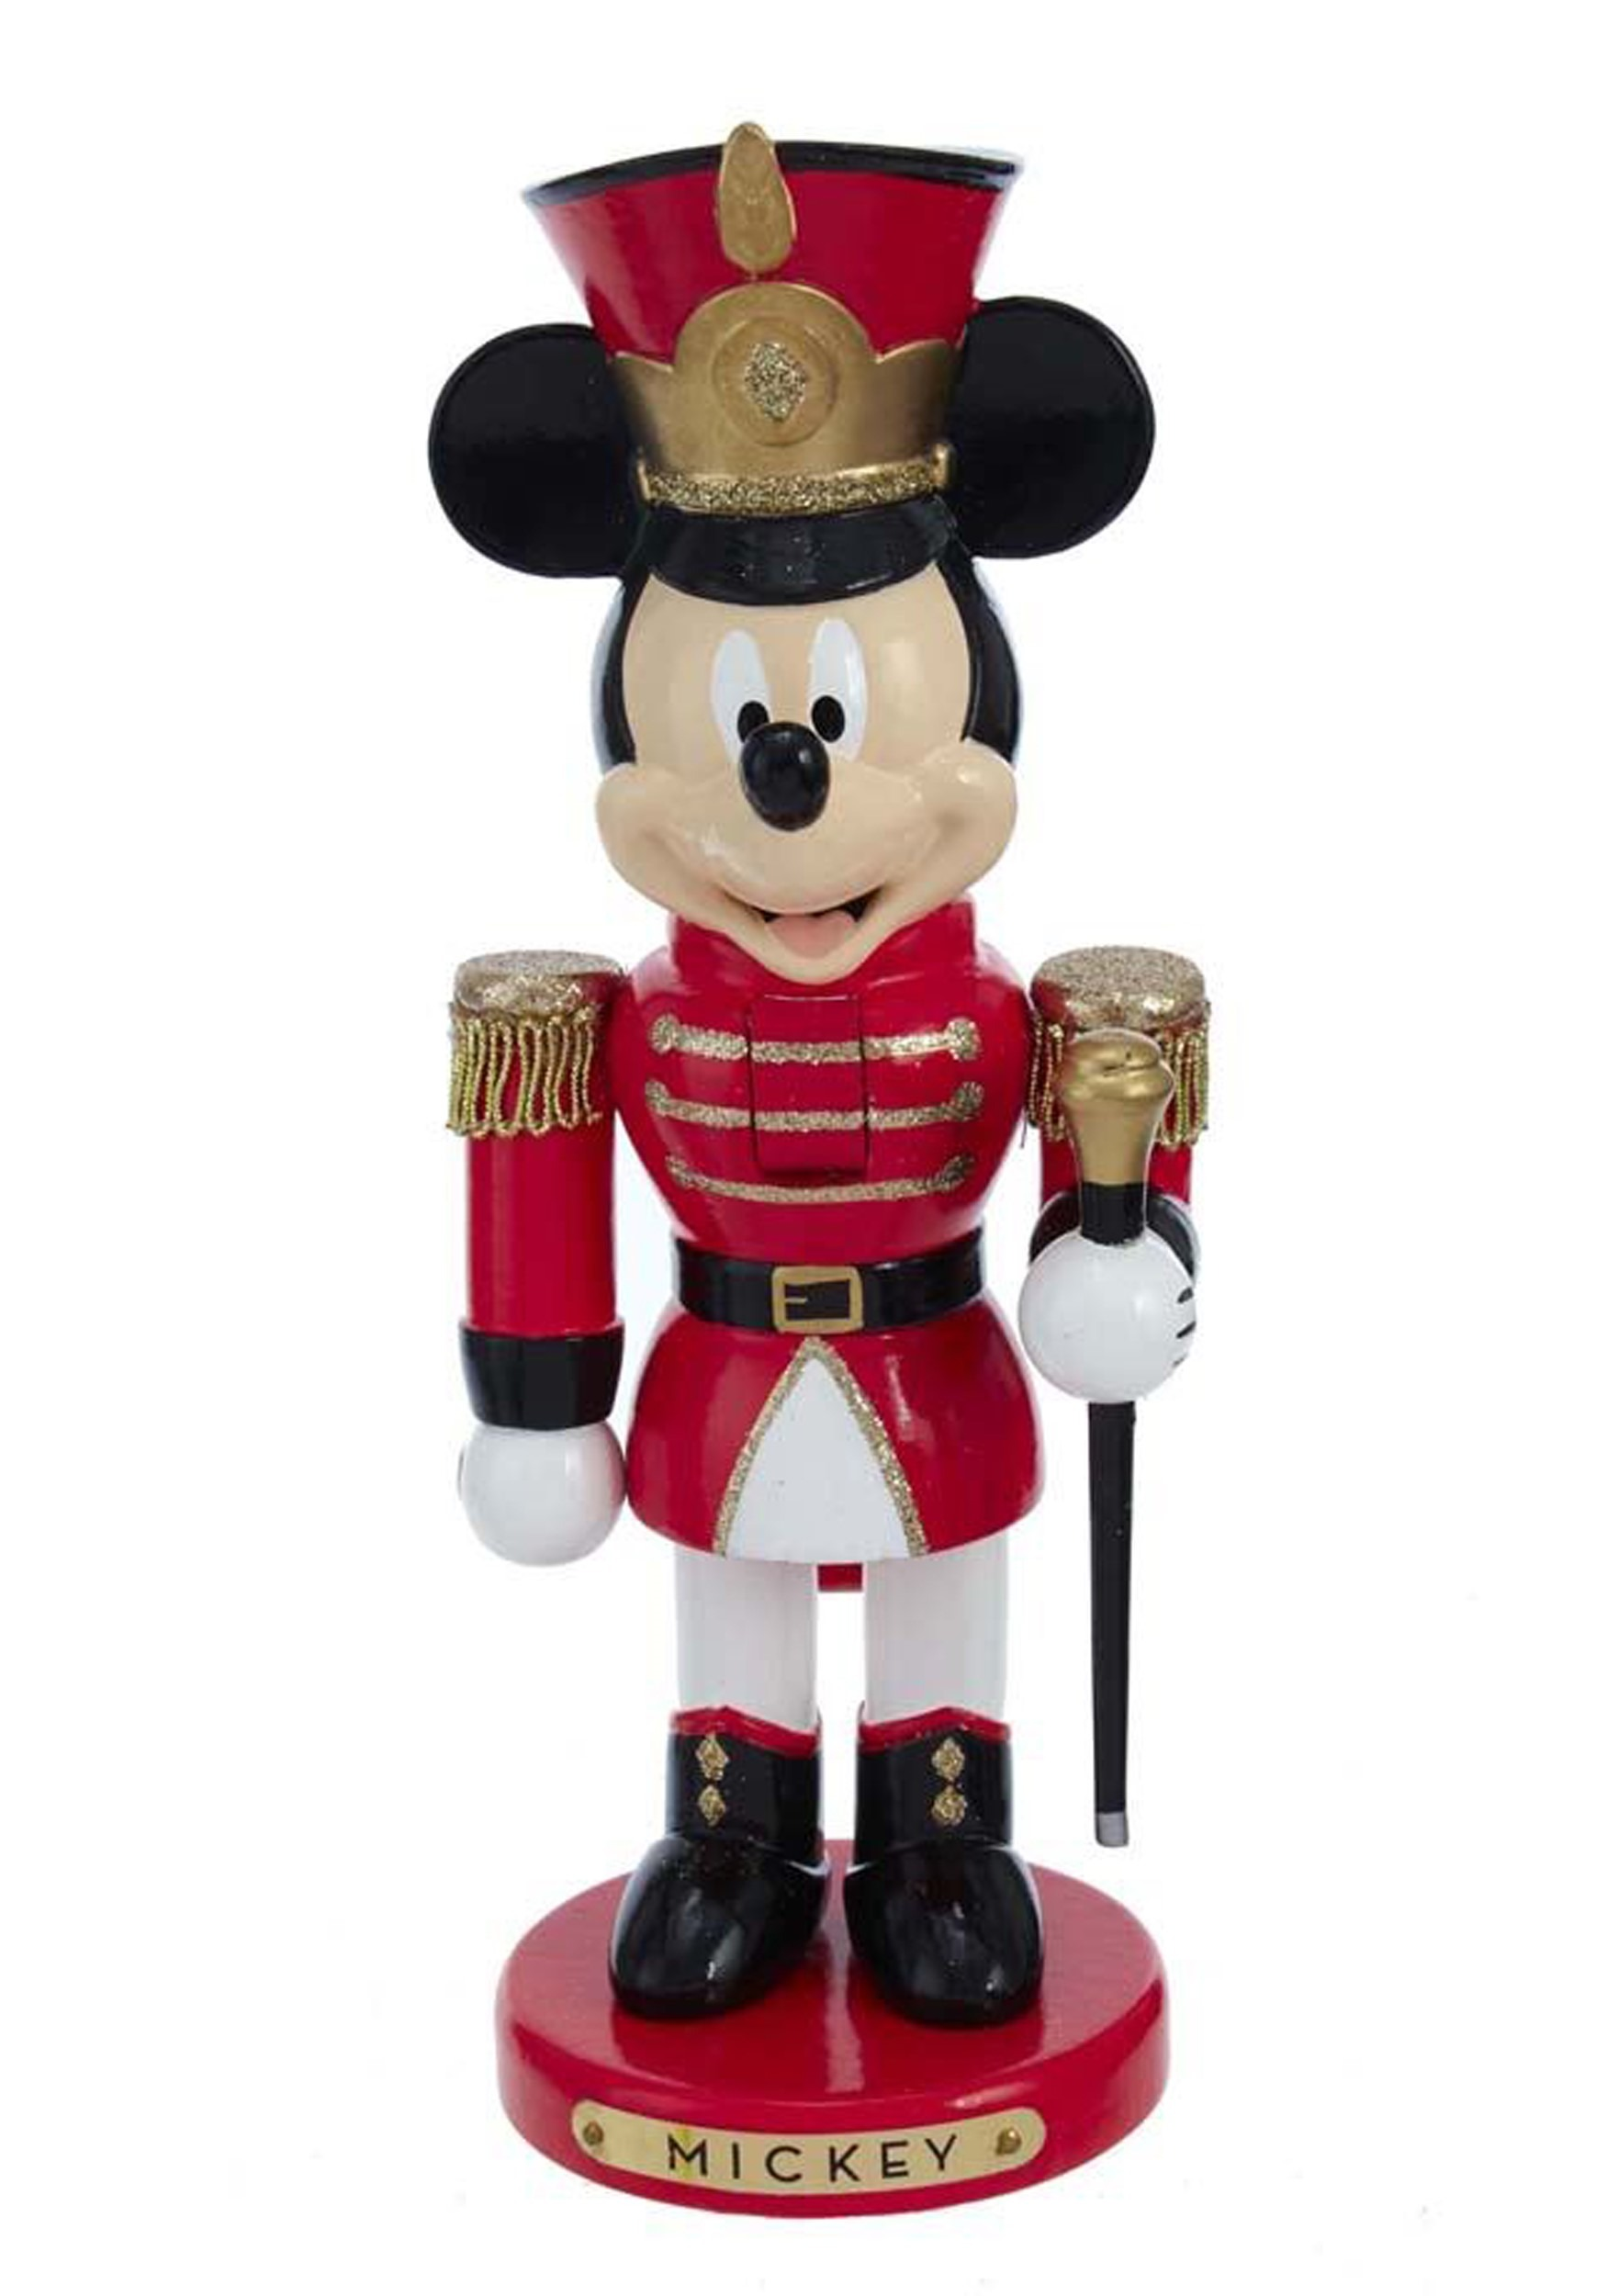 Marching Band Mickey Mouse Leader Nutcracker